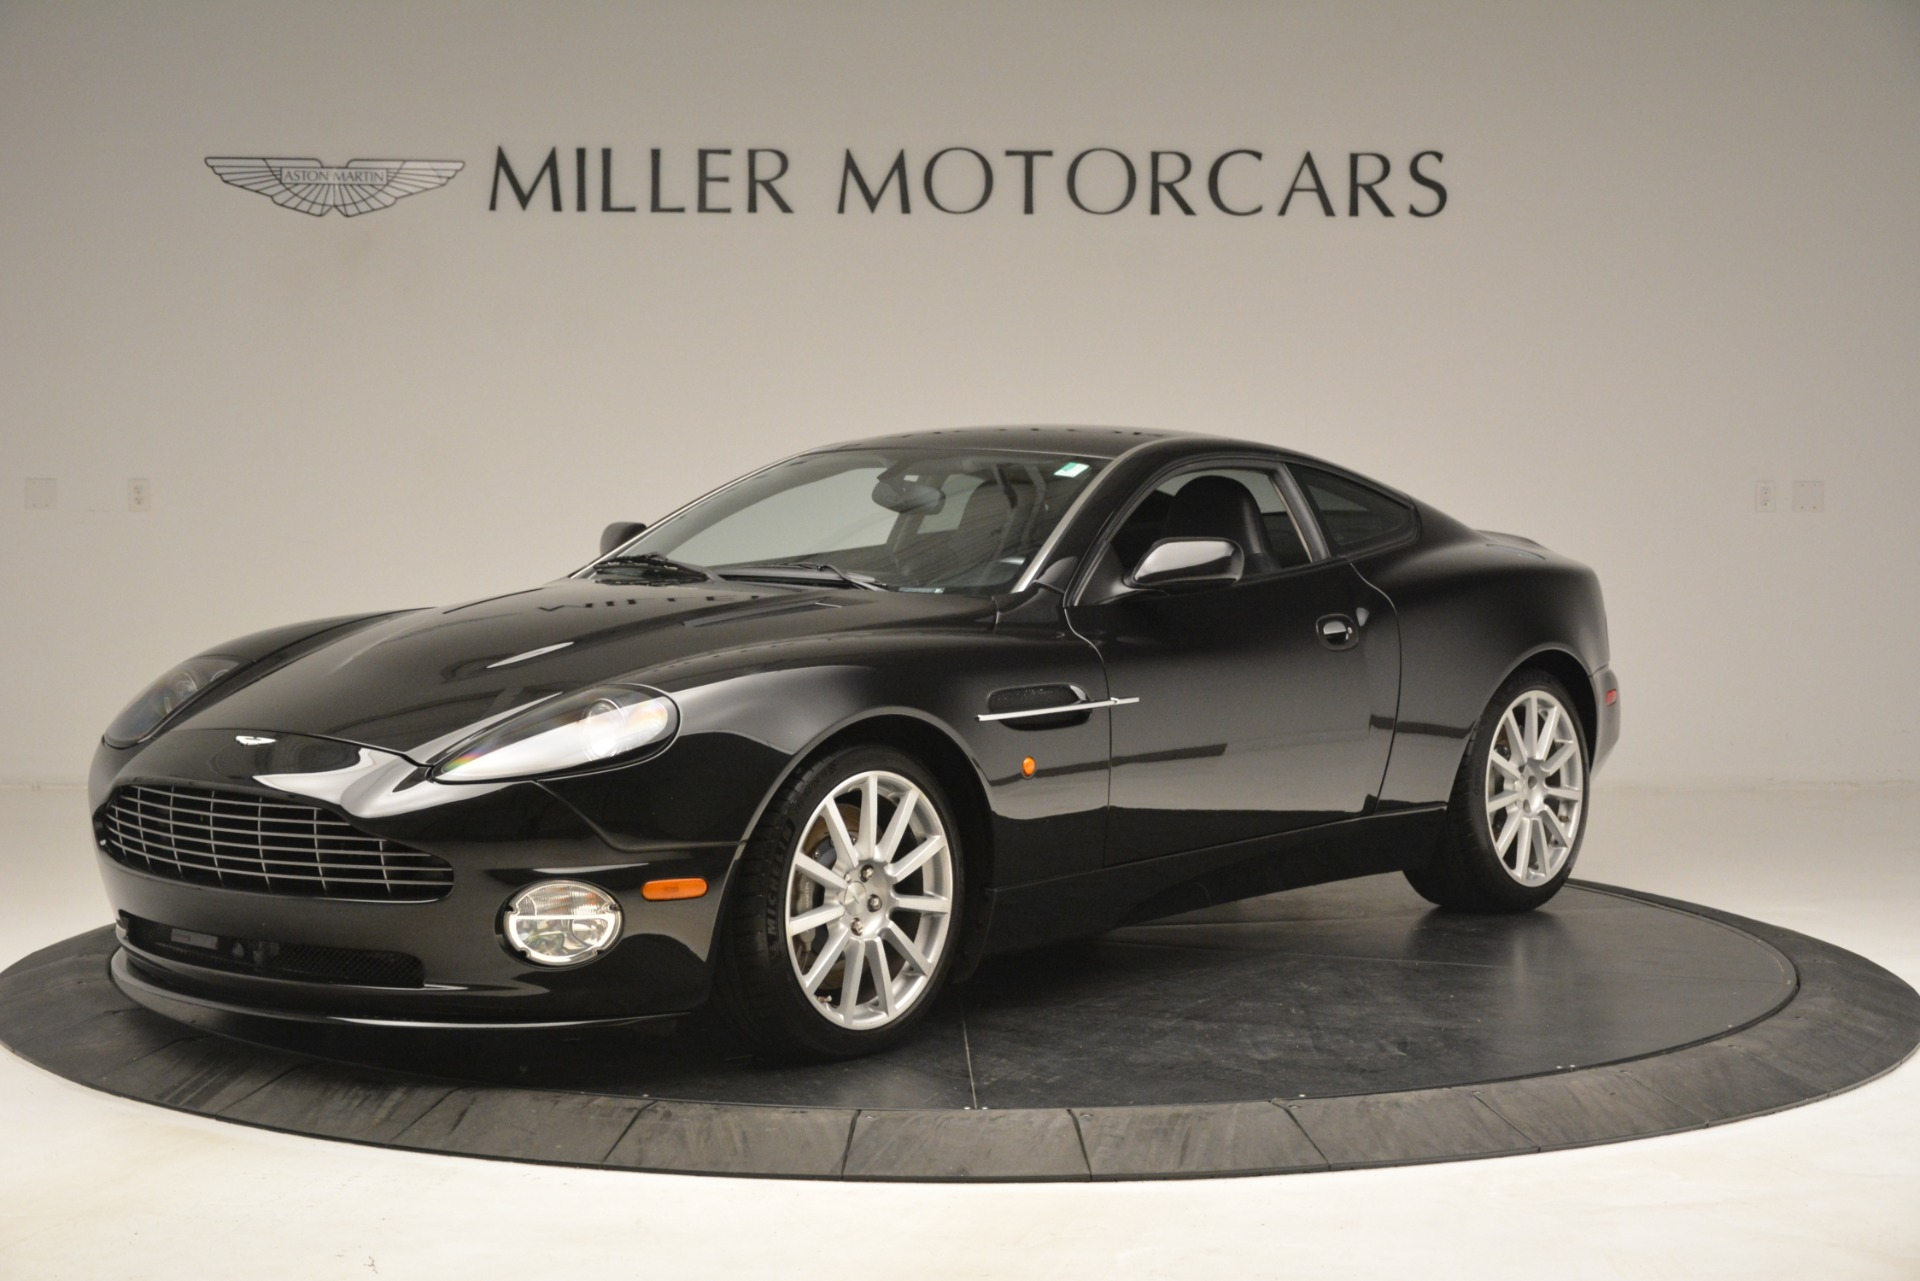 Used 2005 Aston Martin V12 Vanquish S Coupe for sale Sold at Bugatti of Greenwich in Greenwich CT 06830 1